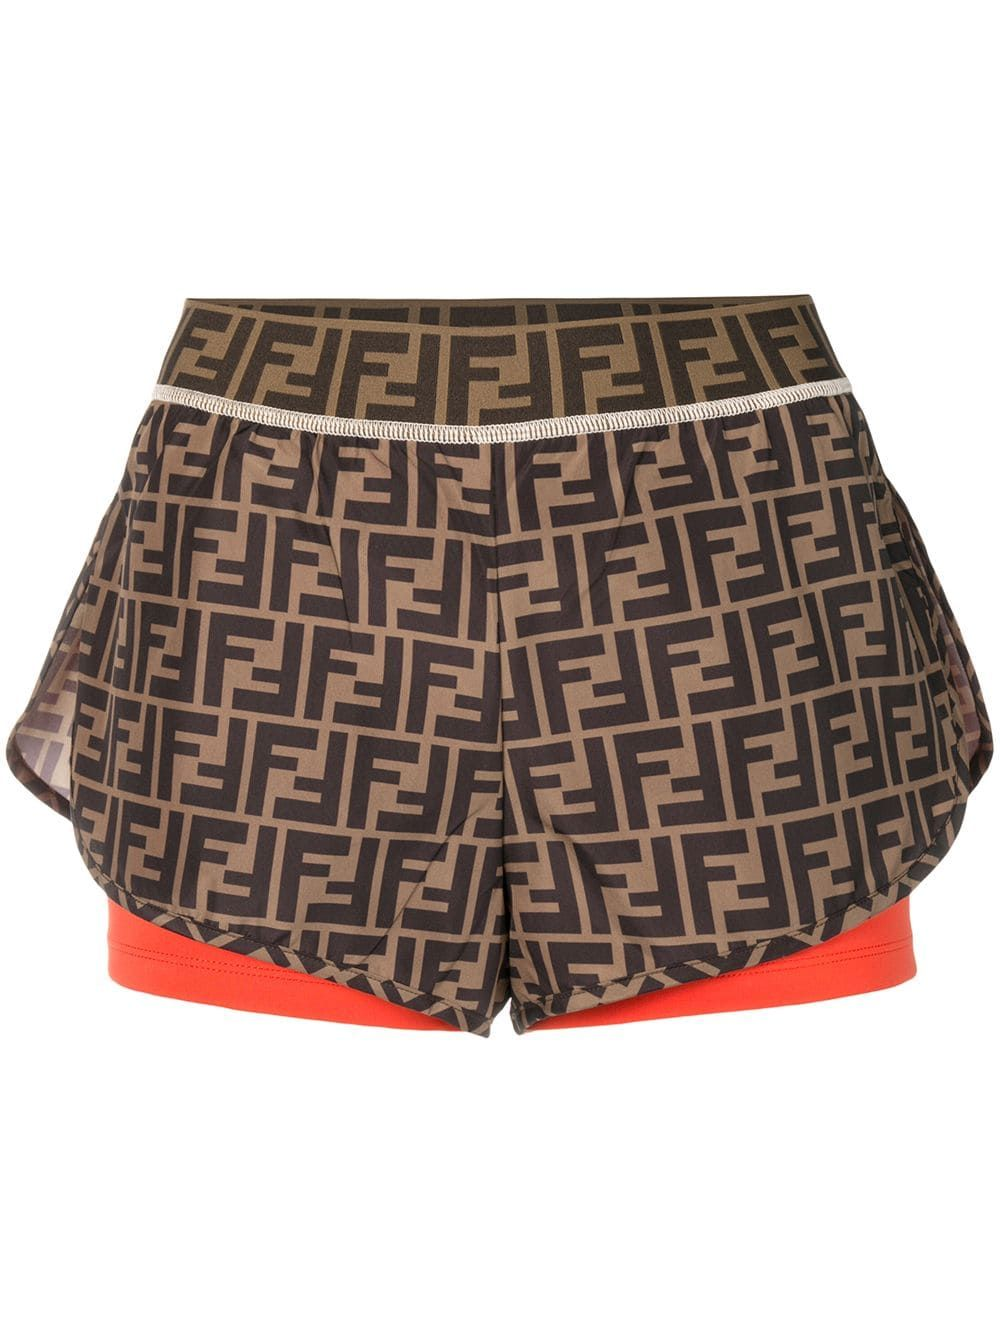 8d880a181b FENDI FENDI LAYERED FF LOGO SHORTS - BROWN. #fendi #cloth | Fendi in ...